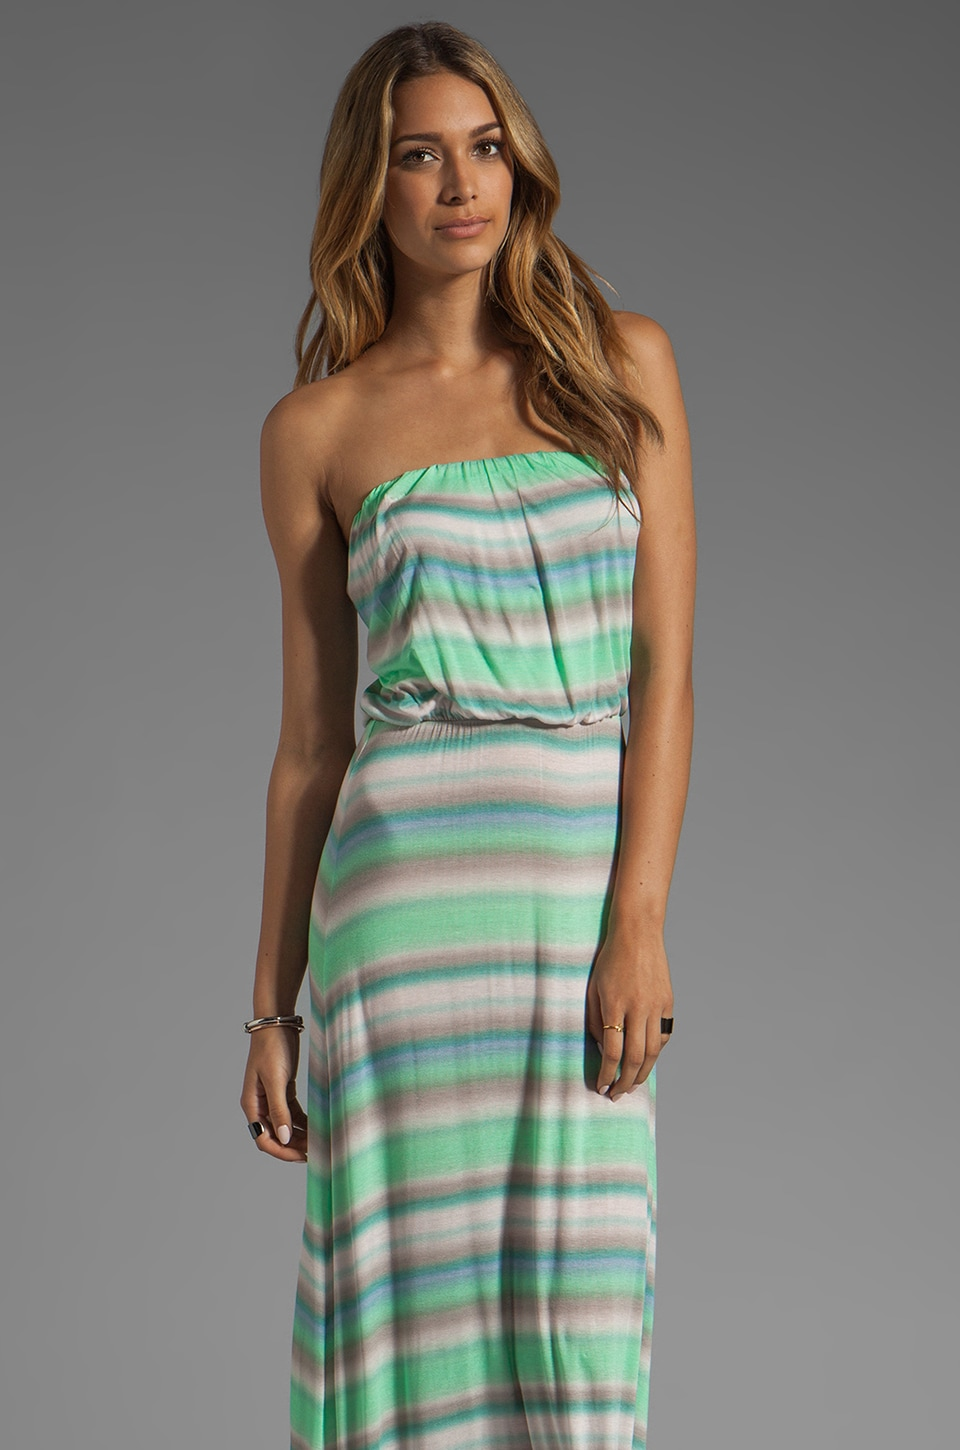 Velvet by Graham & Spencer Taylor Sunset Stripe Maxi in Aquarim